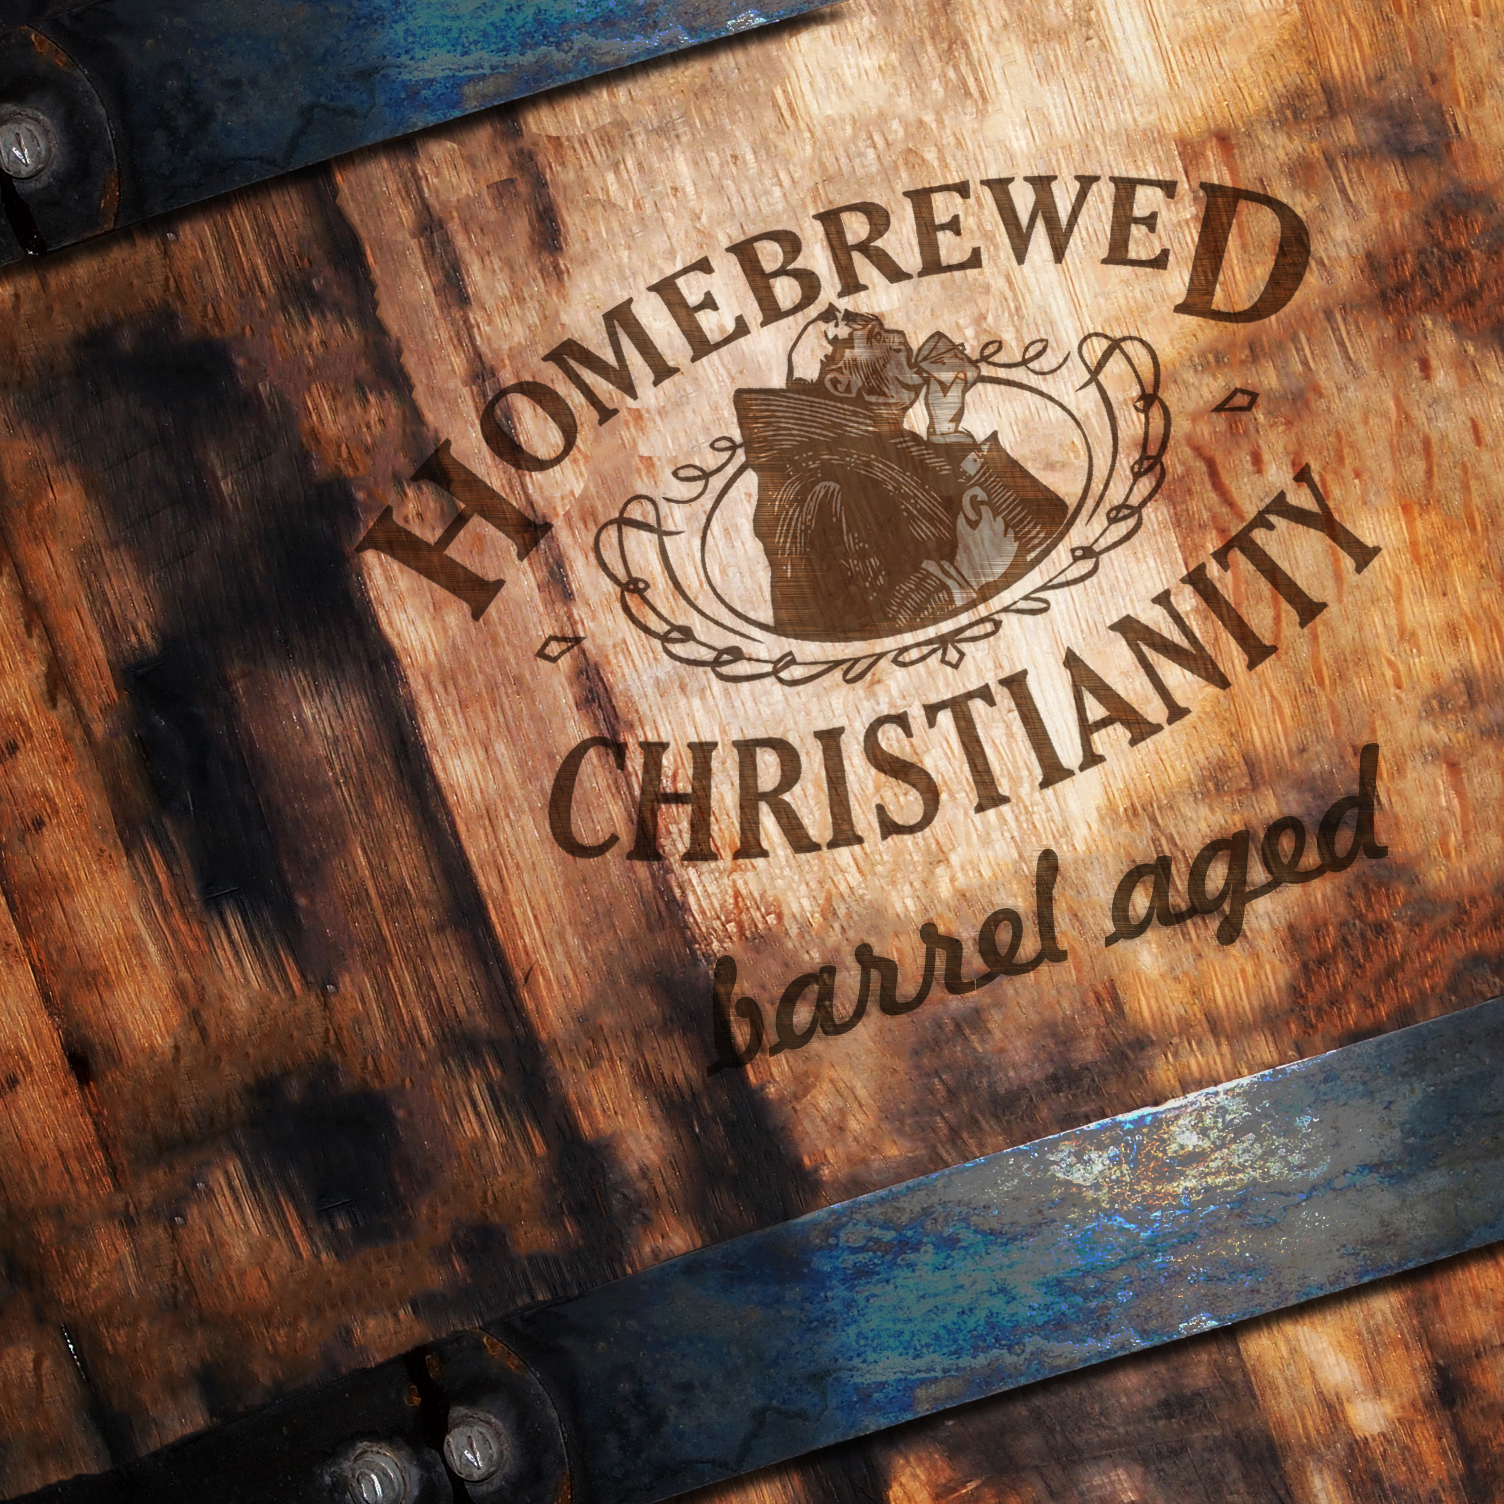 Barrel Aged – Homebrewed Christianity